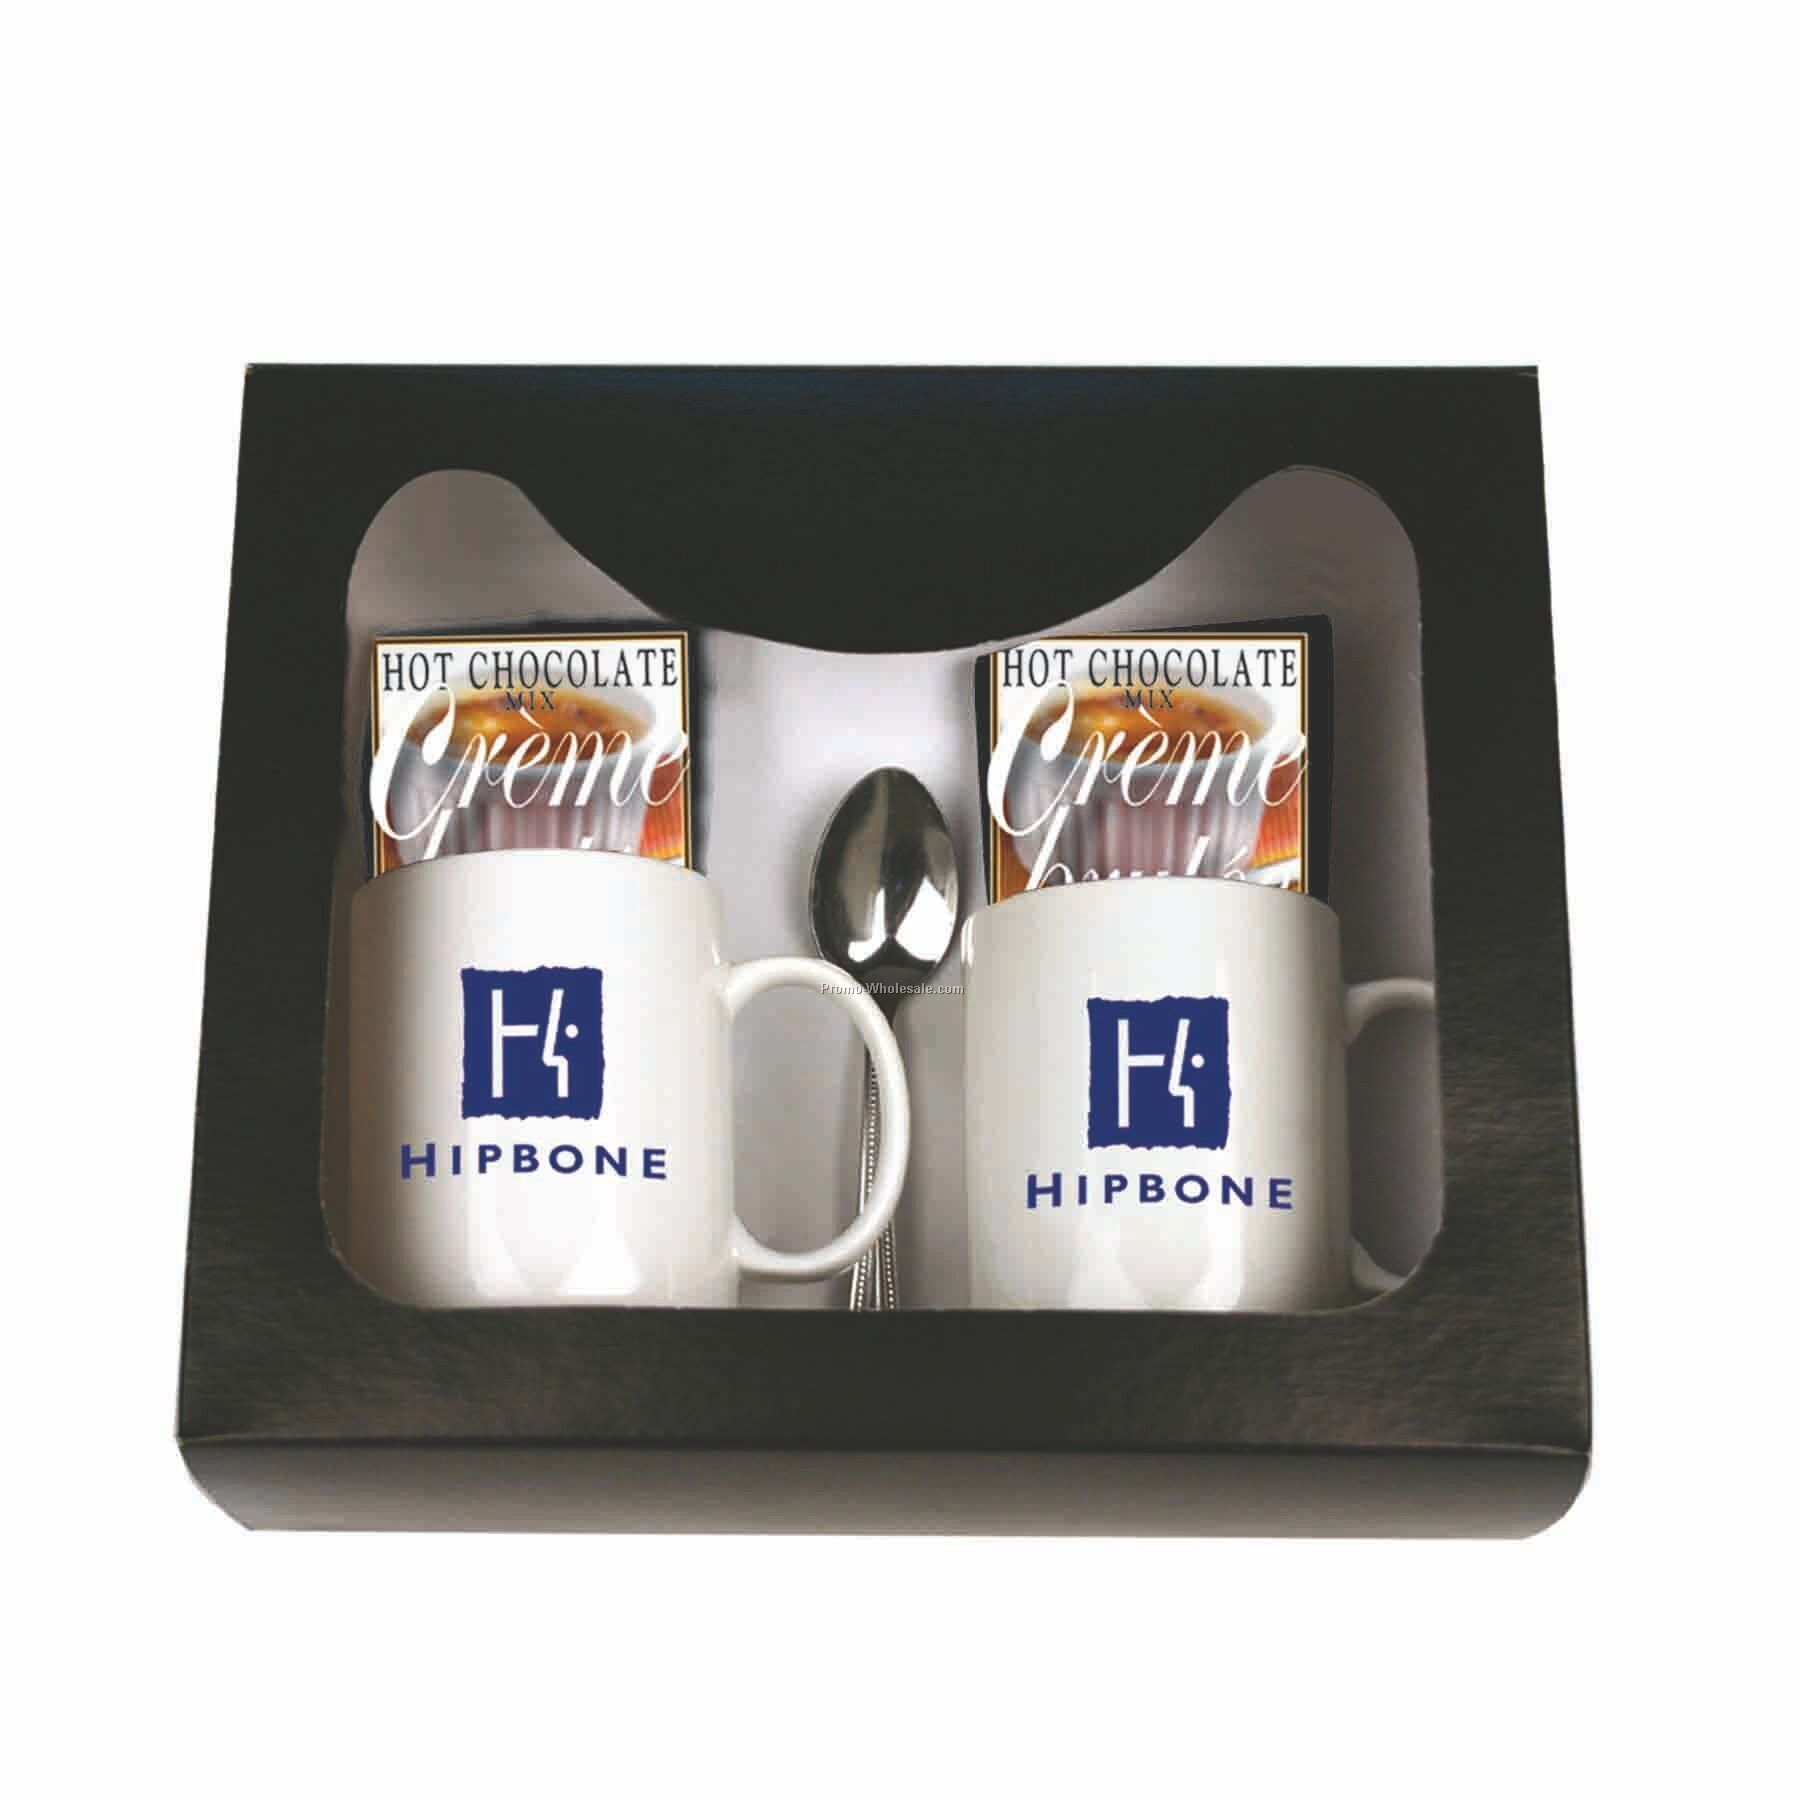 Hot Chocolate For 2 Gourmet Gift Set (Creme Brulee W/ Marshmallows)